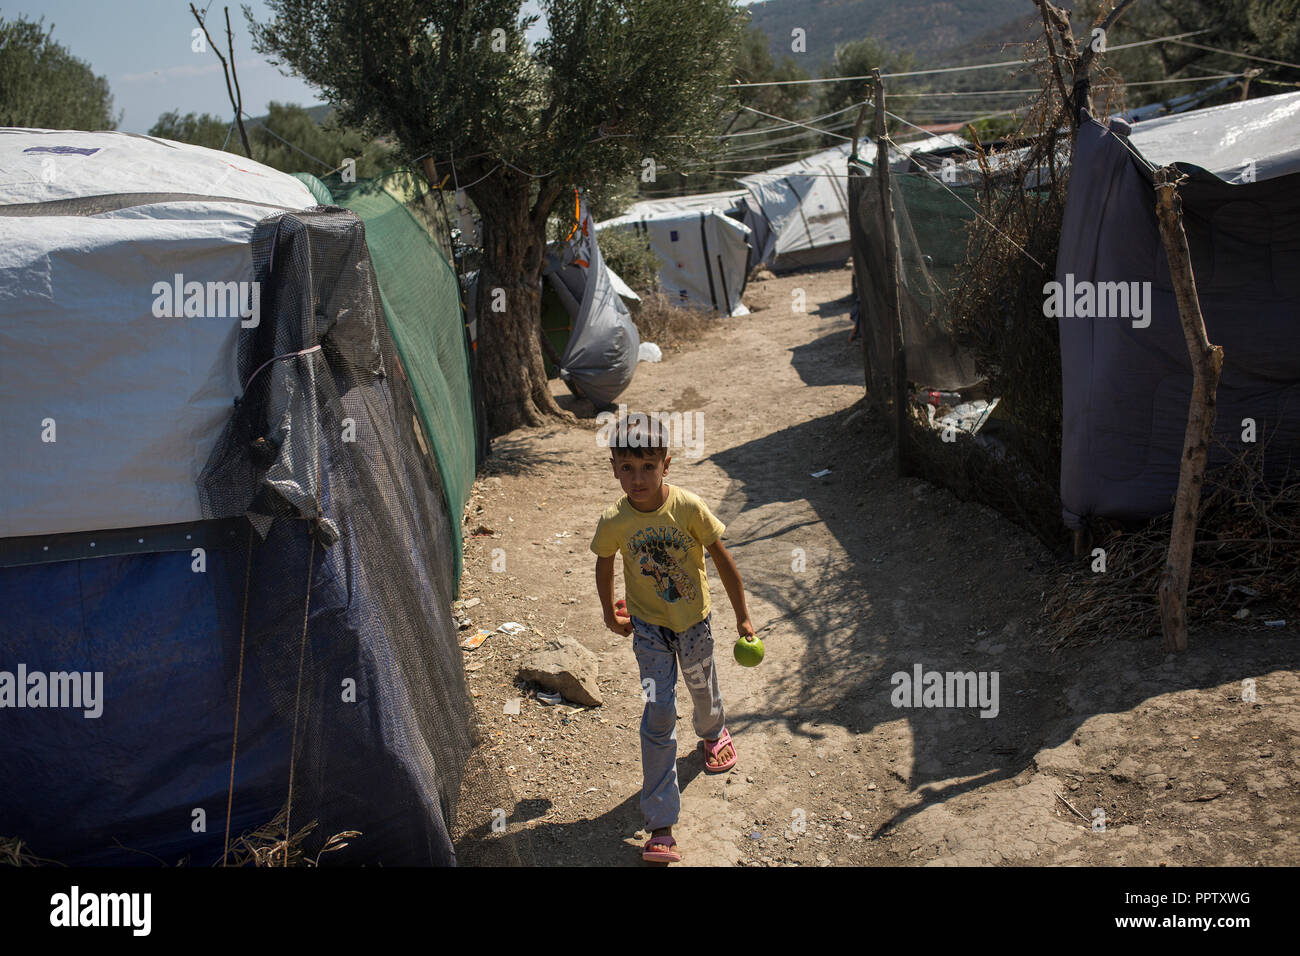 Moira, Greece. 24th Sep, 2018. A child walks between the tents in a temporary camp next to the refugee camp of Moria. Credit: Socrates Baltagiannis/dpa/Alamy Live News - Stock Image